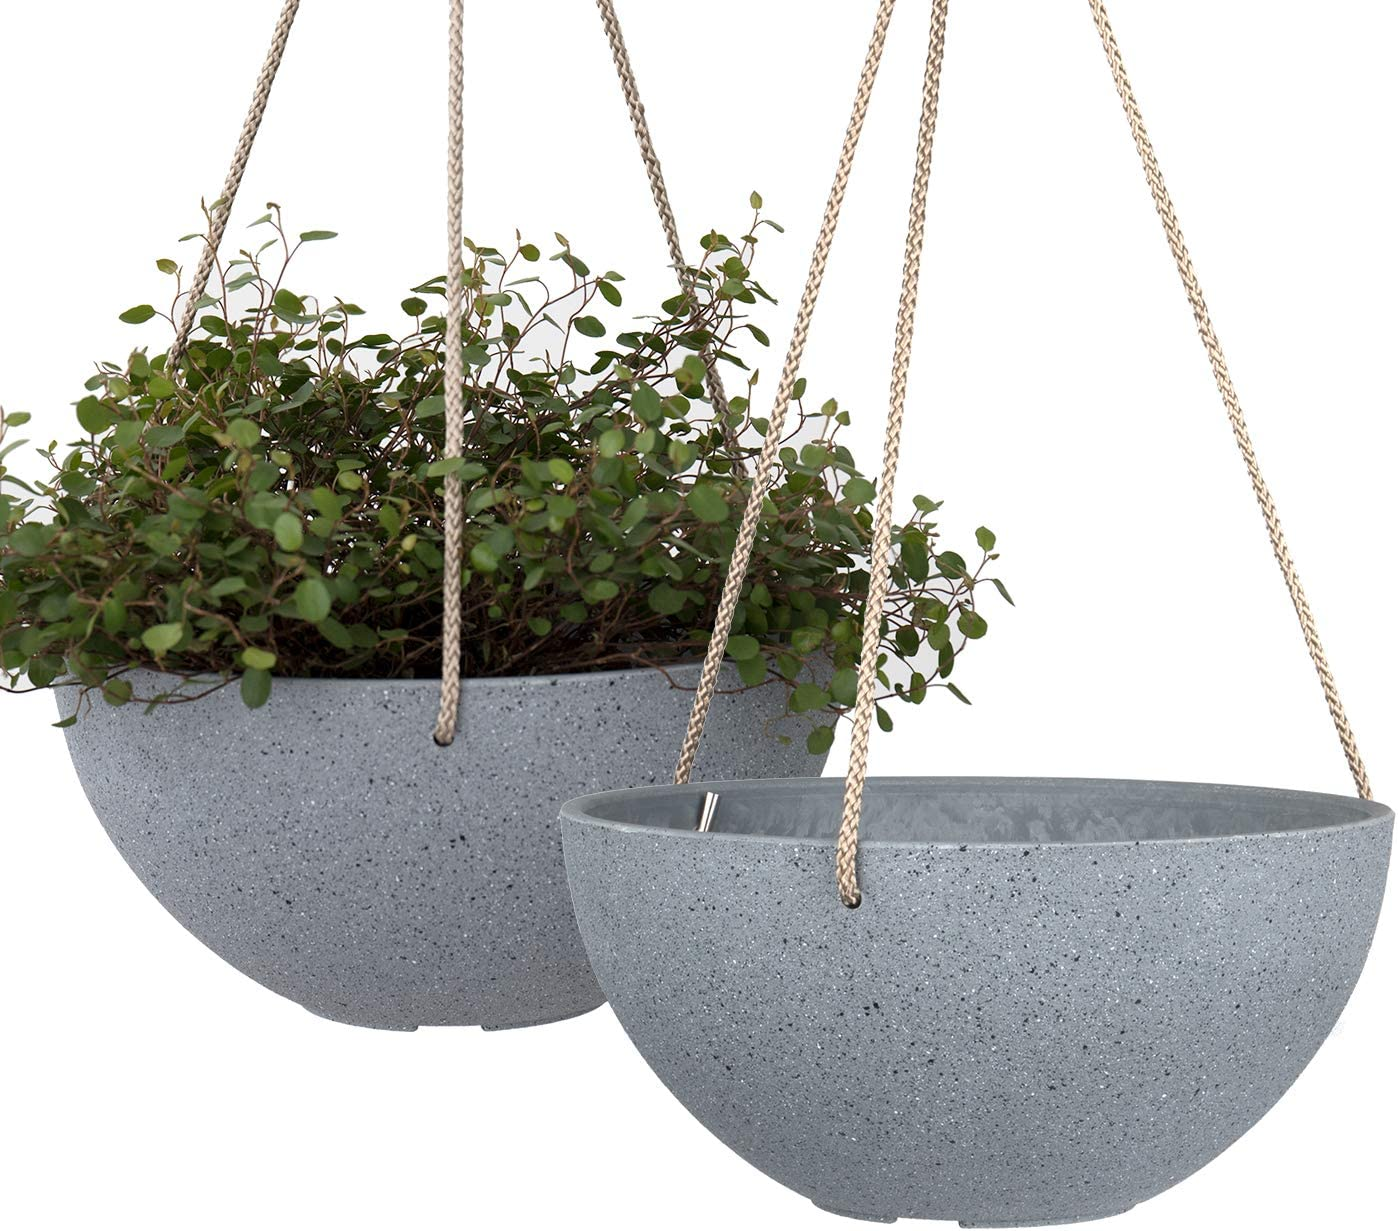 Hanging Planters for Indoor Plants - 10 Inch Flower Pots Outdoor Garden Planters Pots, Light Grey, Set of 2